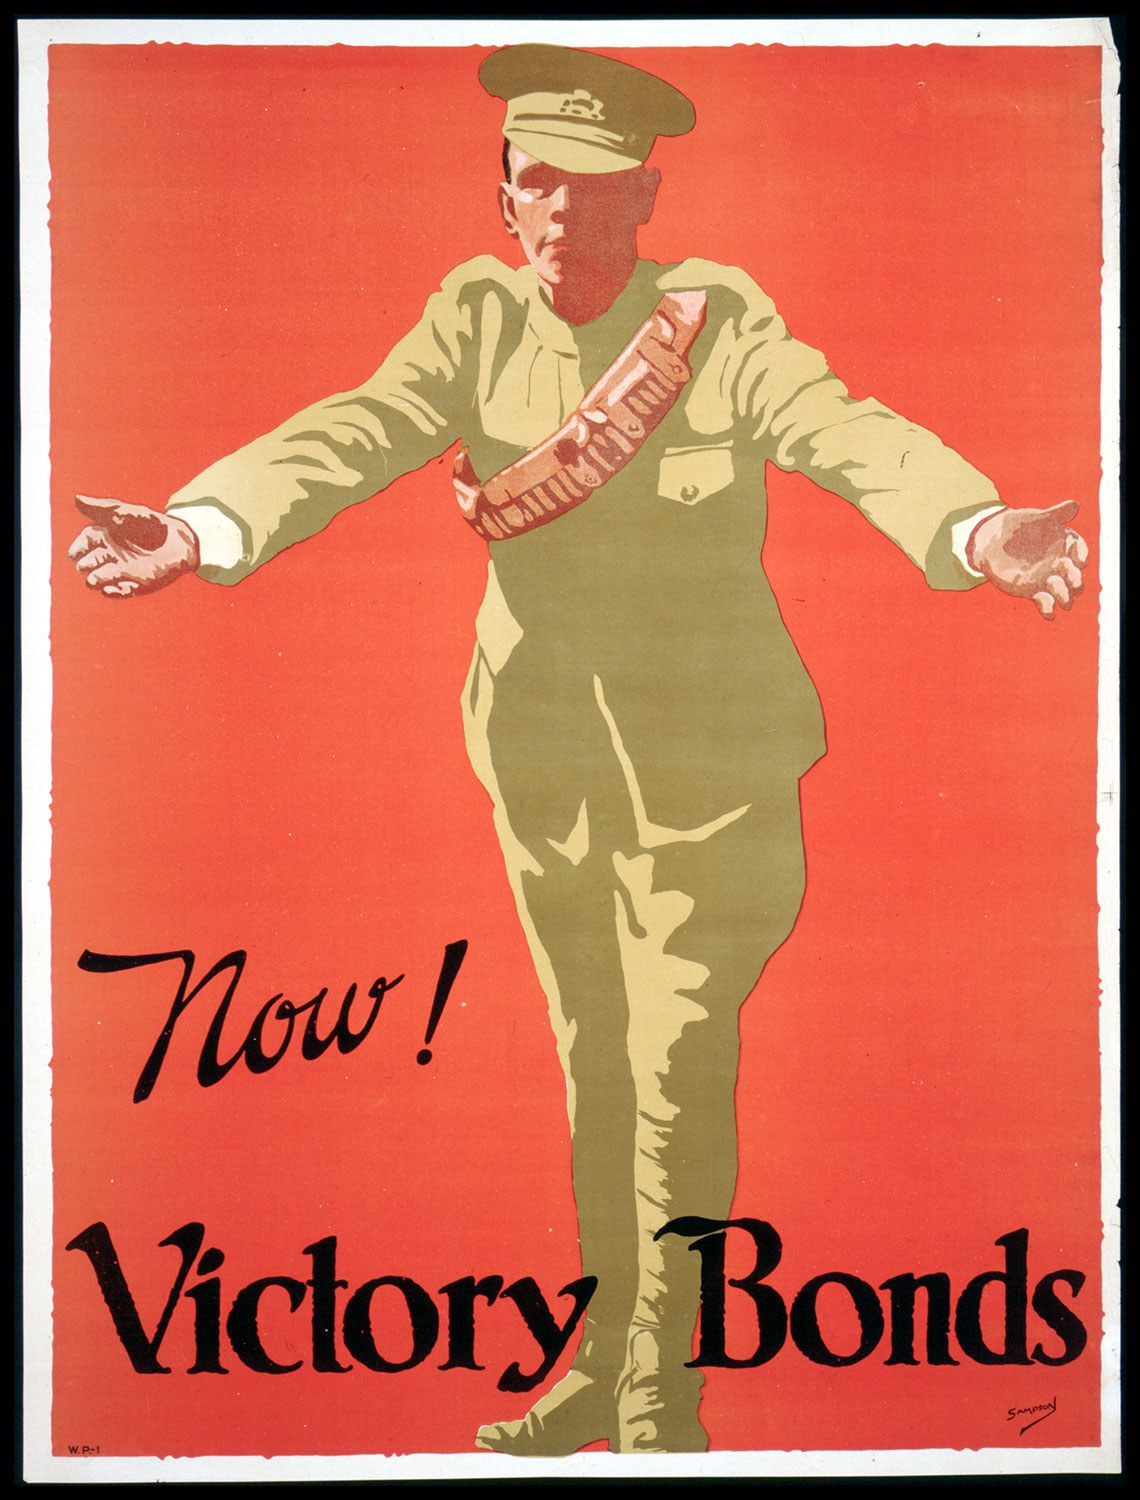 J.E. Sampson. Archives of Ontario War Poster Collection [between 1914 and 1918]. (Archives of Ontario, C 233-2-1-0-296).